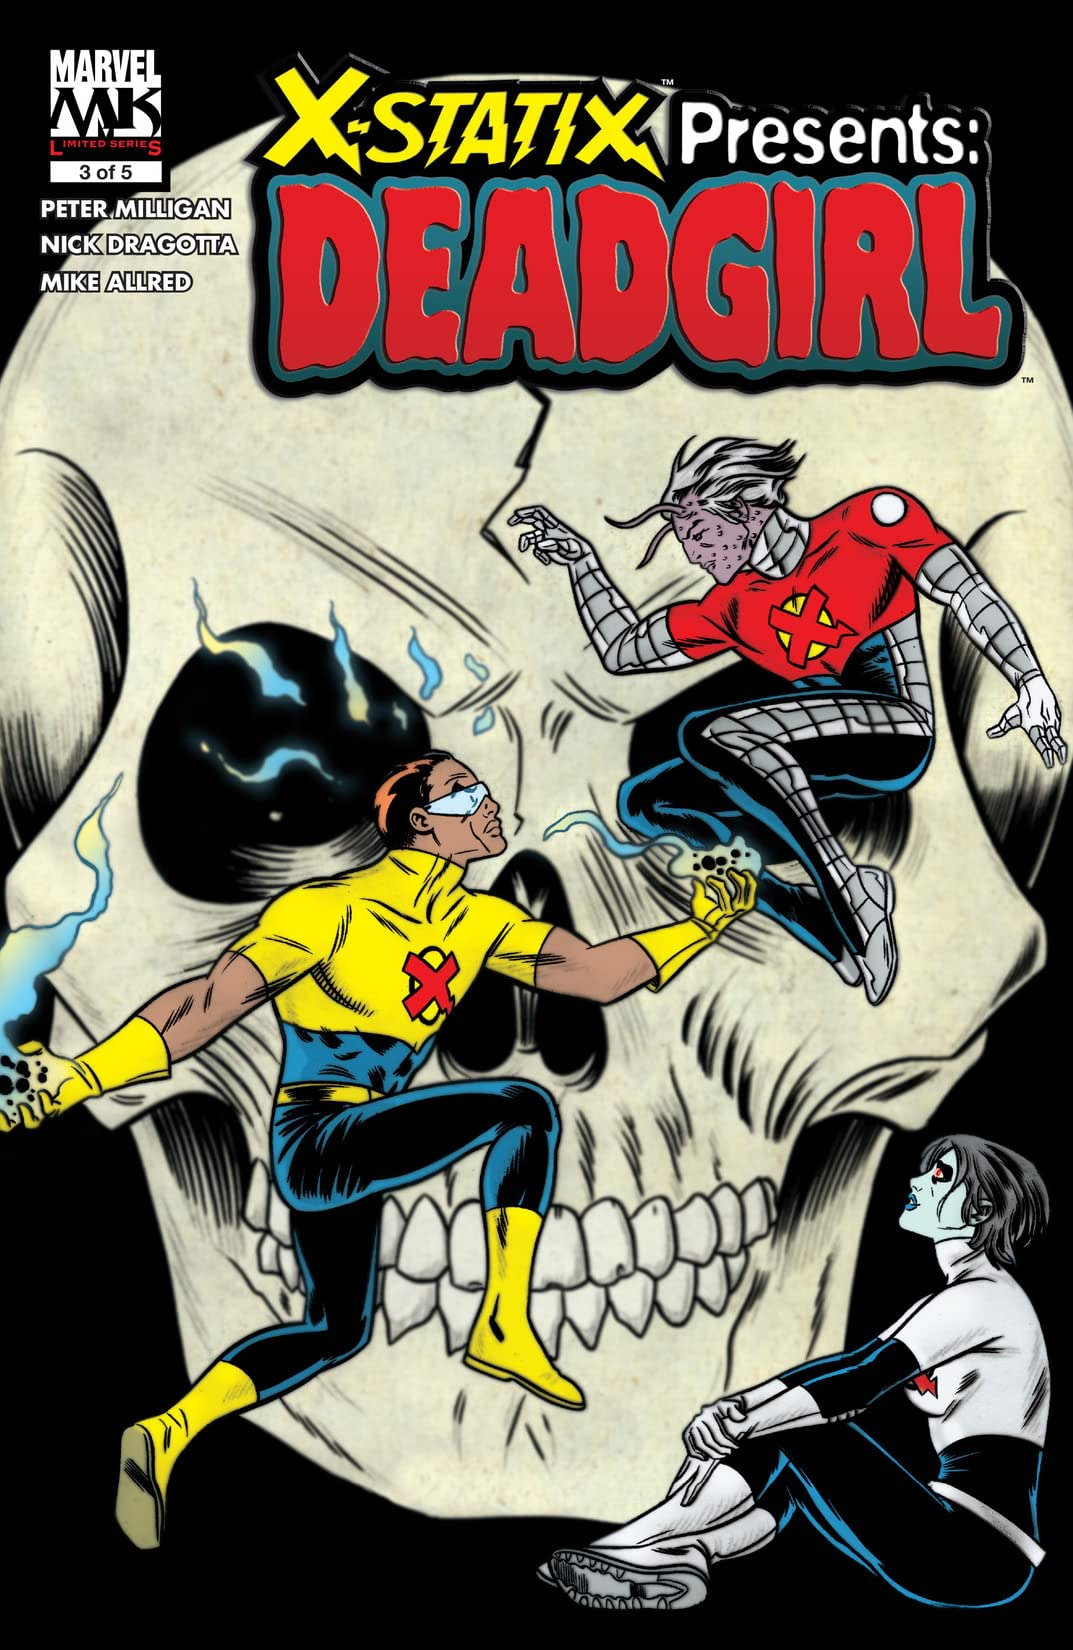 X-Statix Presents: Dead Girl (2006) #3 (of 5)